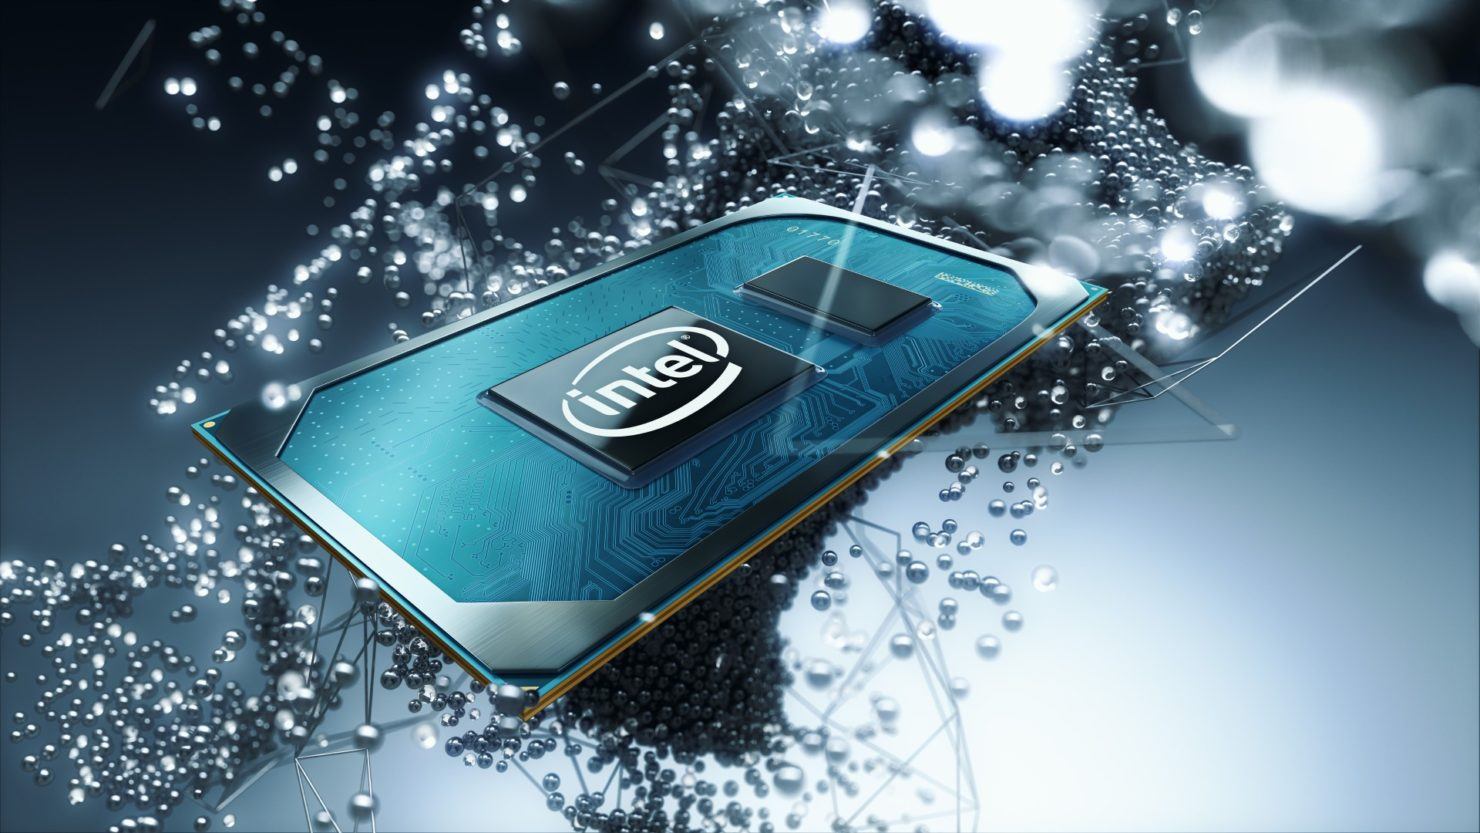 intel-tiger-lake-high-performance-10nm-cpus-with-8-cores-&-16-threads-launching-next-year,-will-compete-with-amd's-cezanne-h-lineup